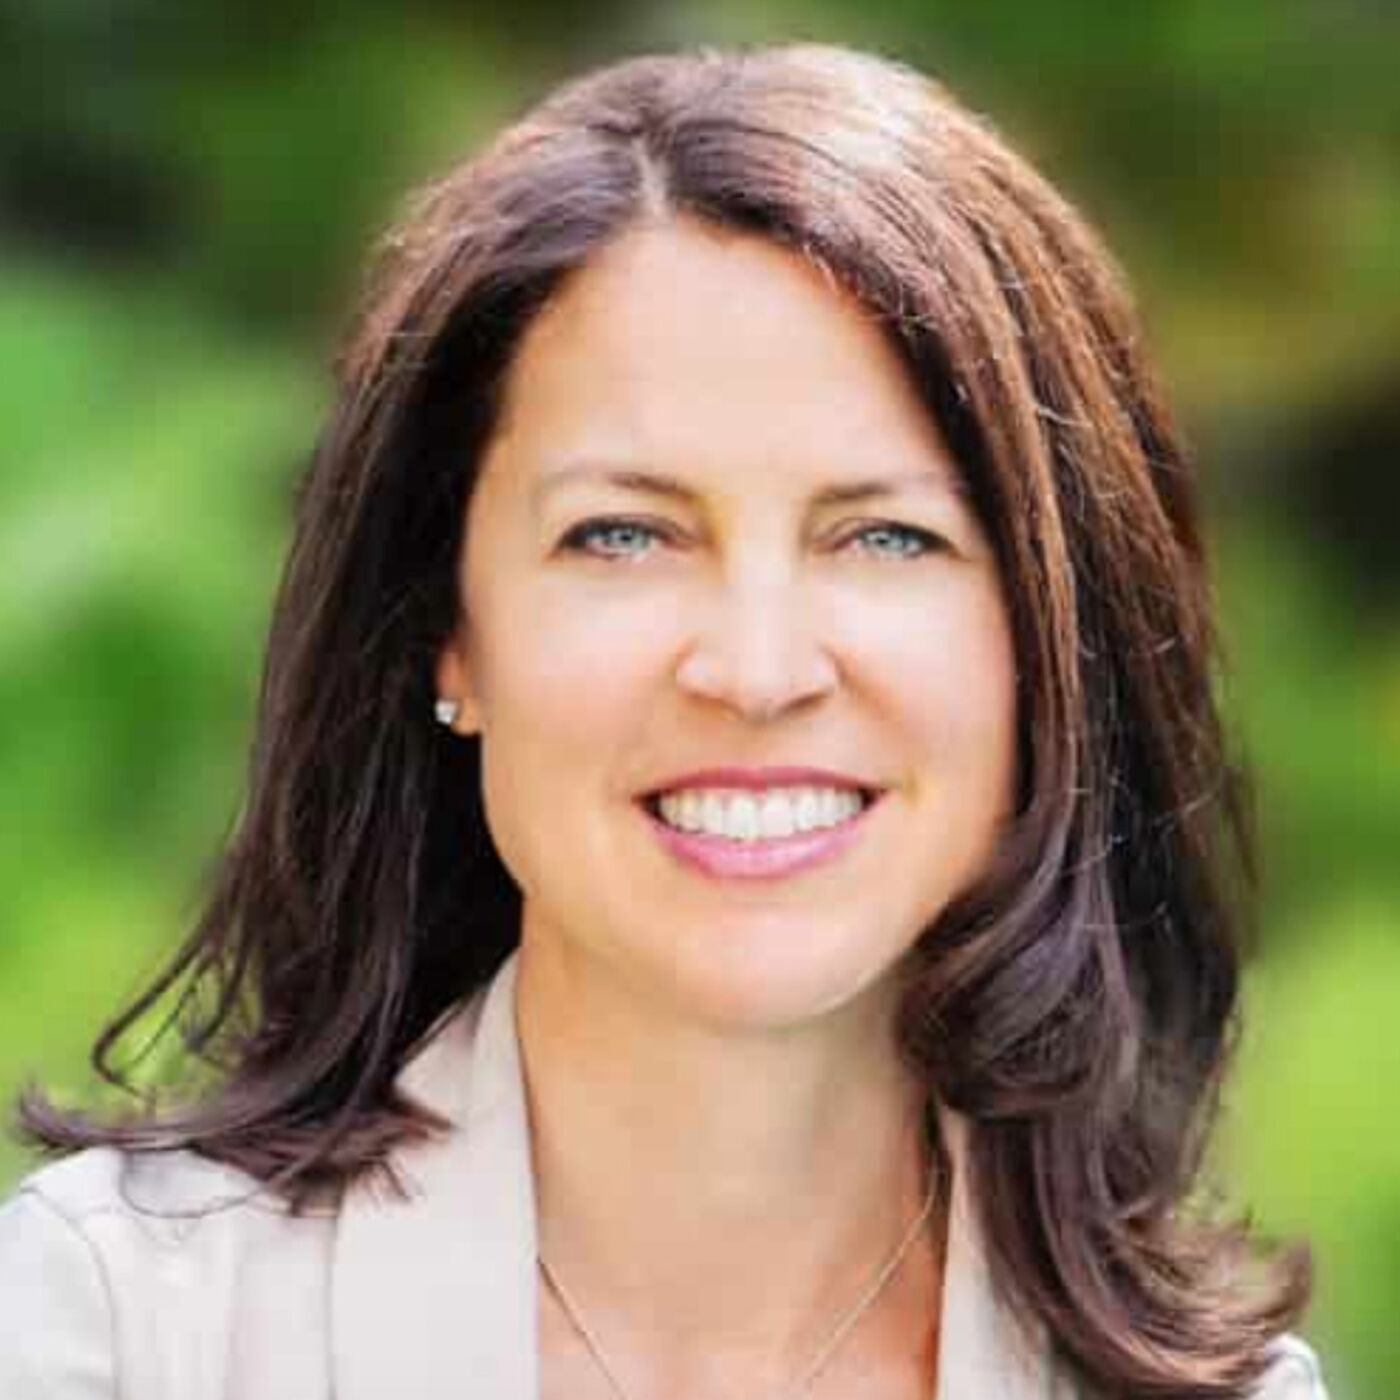 Ep 020 - Bonnie Flemington on nutrition as a key element to a fulfilling life